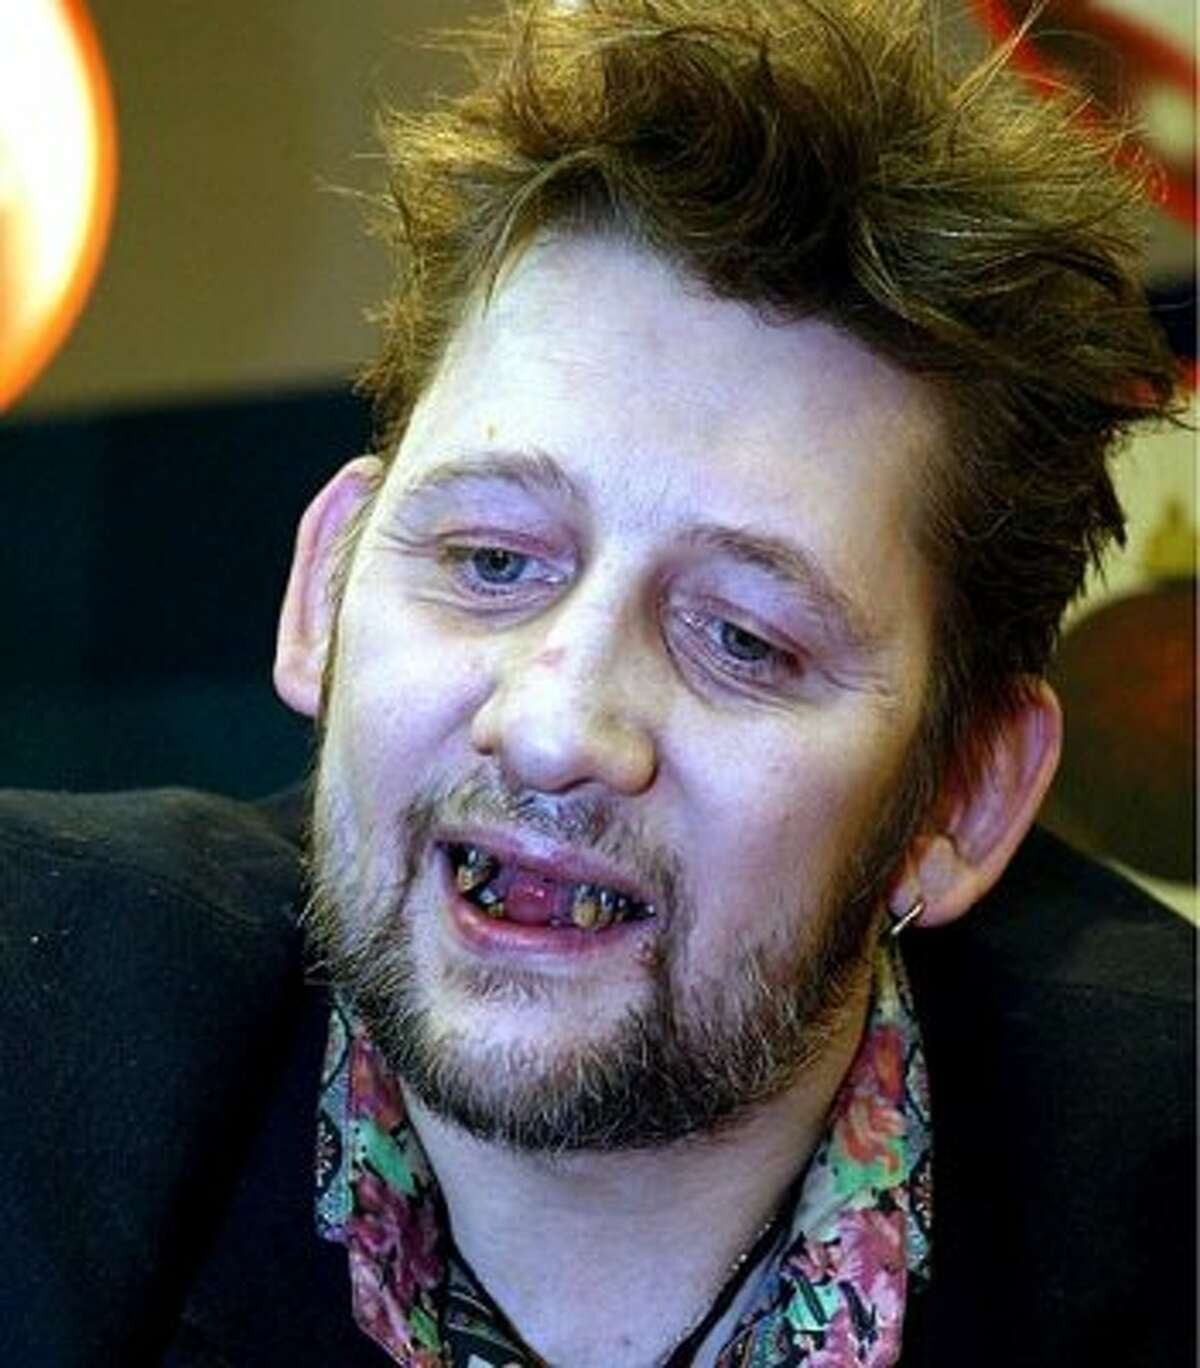 You don't have to look like Mick Jagger circa 1971 to marry a model. Meet some of the guys who have overcome some very obvious physical obstacles to achieve stardom, hang out with groupies and make millions.Shane Macgowan. The Pogues frontman shrewdly saved millions on dental bills. (AP)